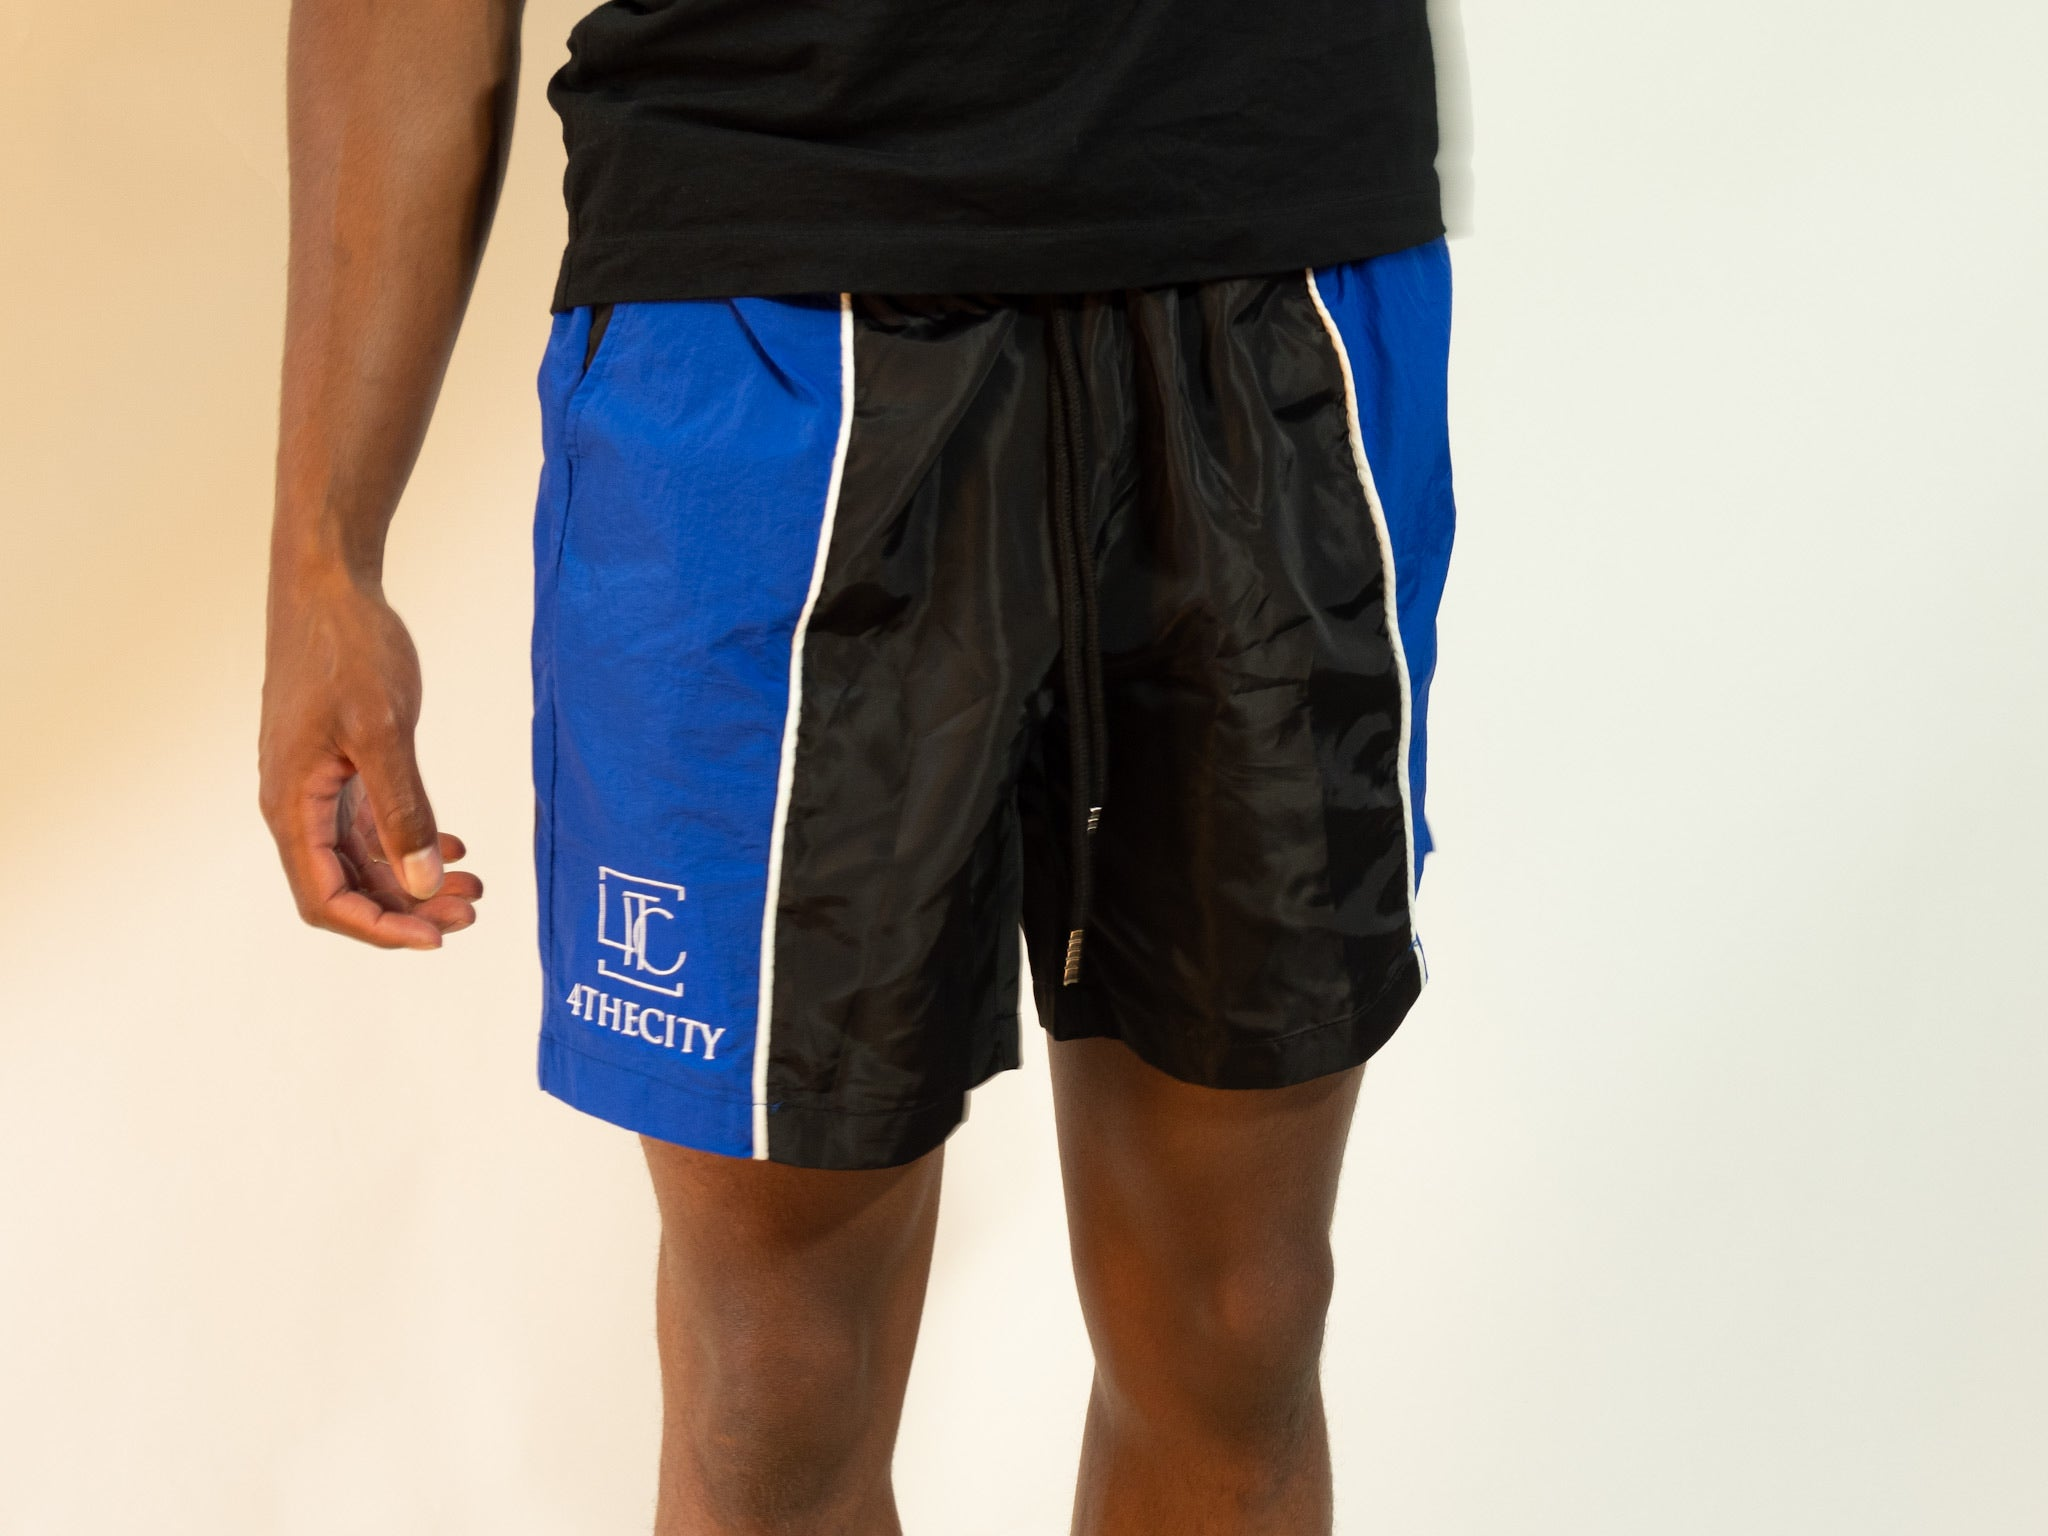 4TC Black & Blue Shorts